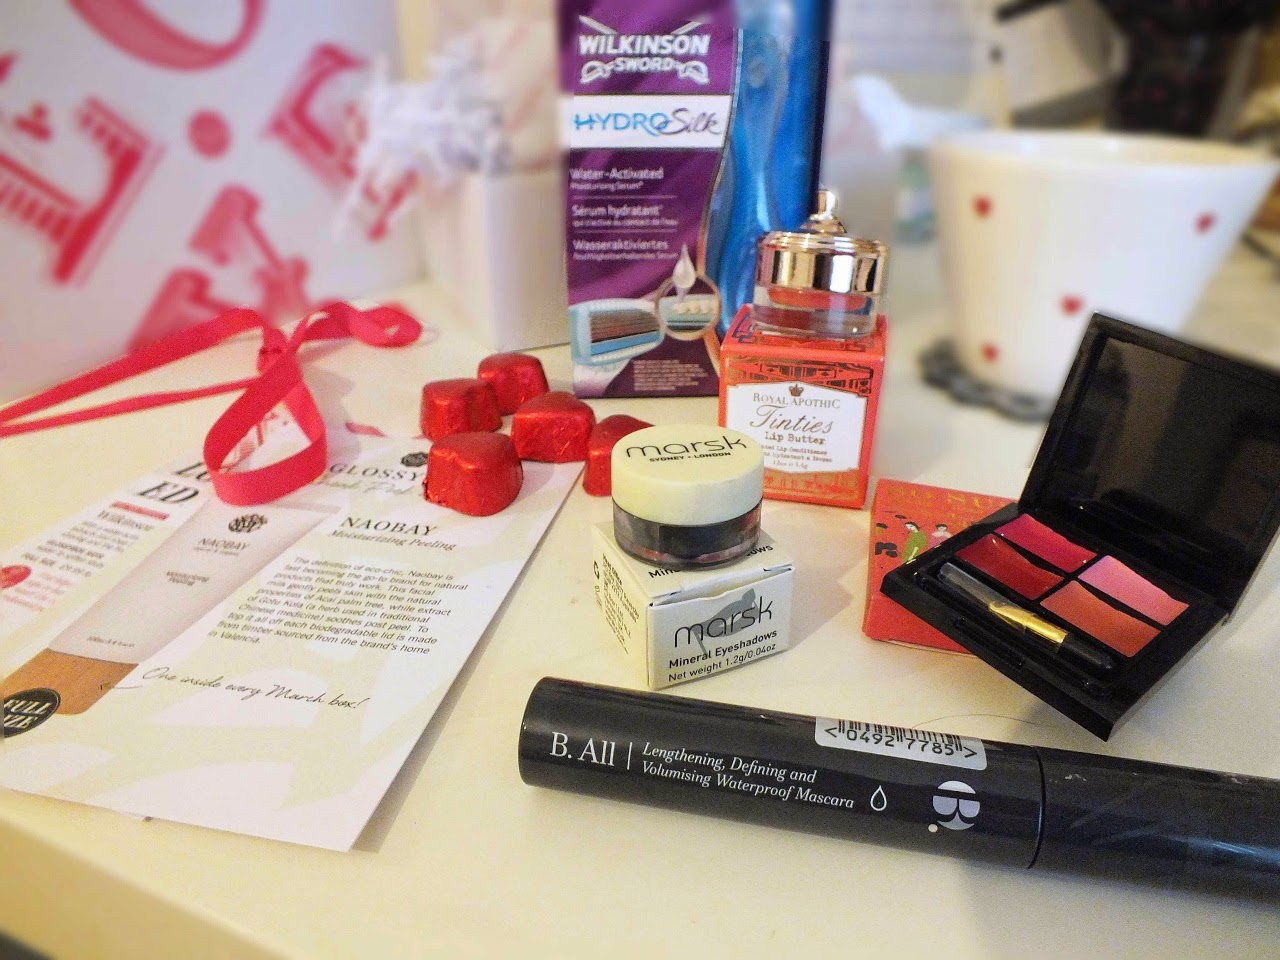 My little box vs glossybox February 2015 review